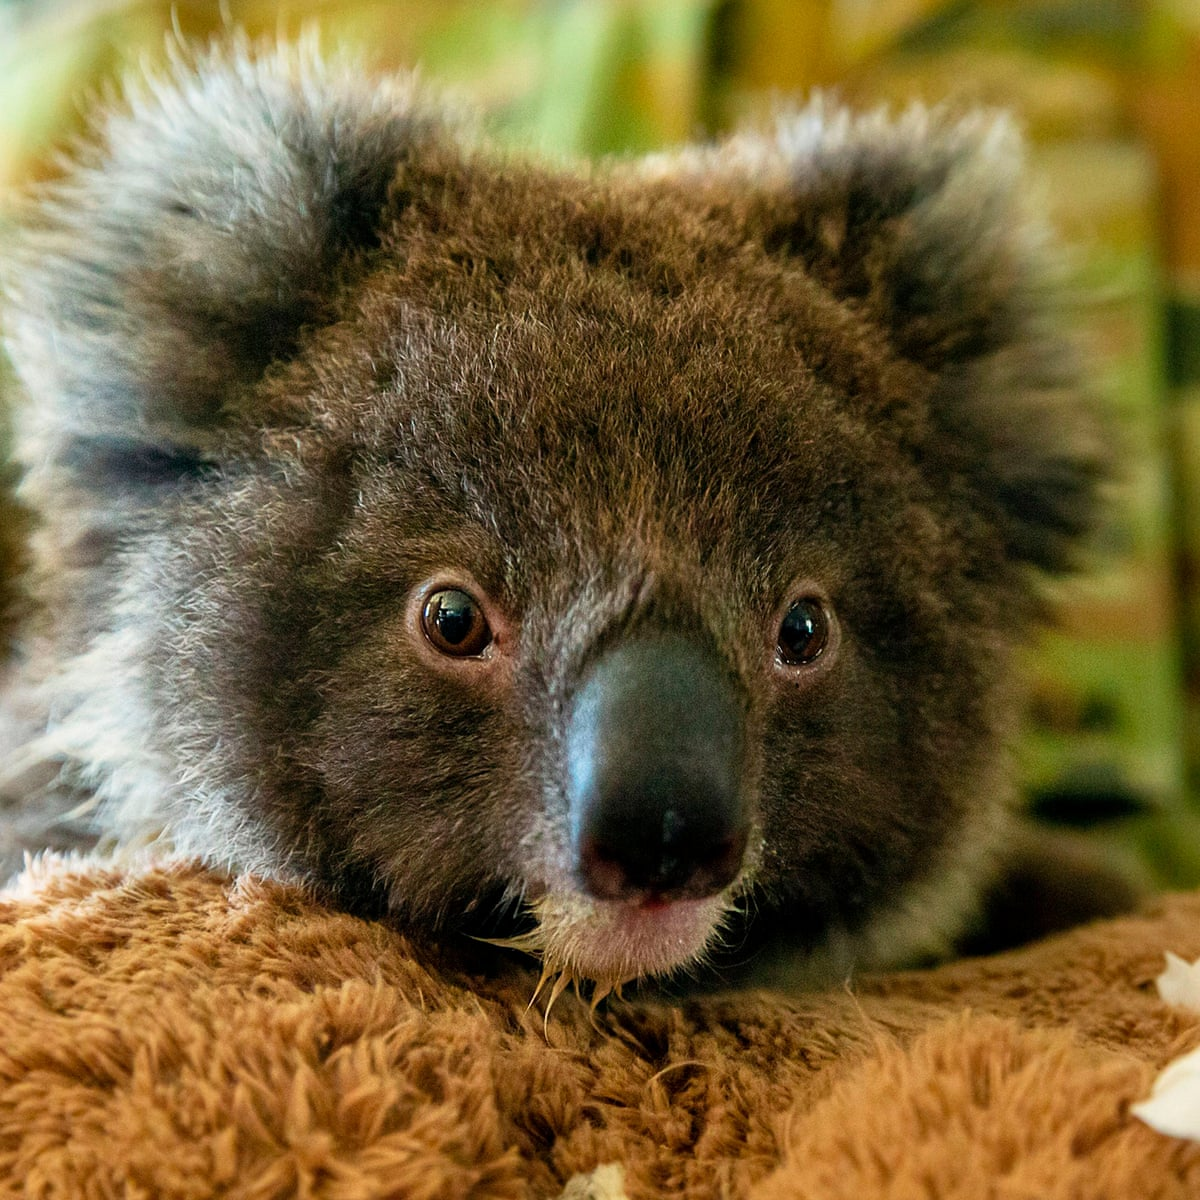 Relocating Koalas To New Zealand Is A Nice Idea But It Isn T A Good One James Russell Australia News The Guardian